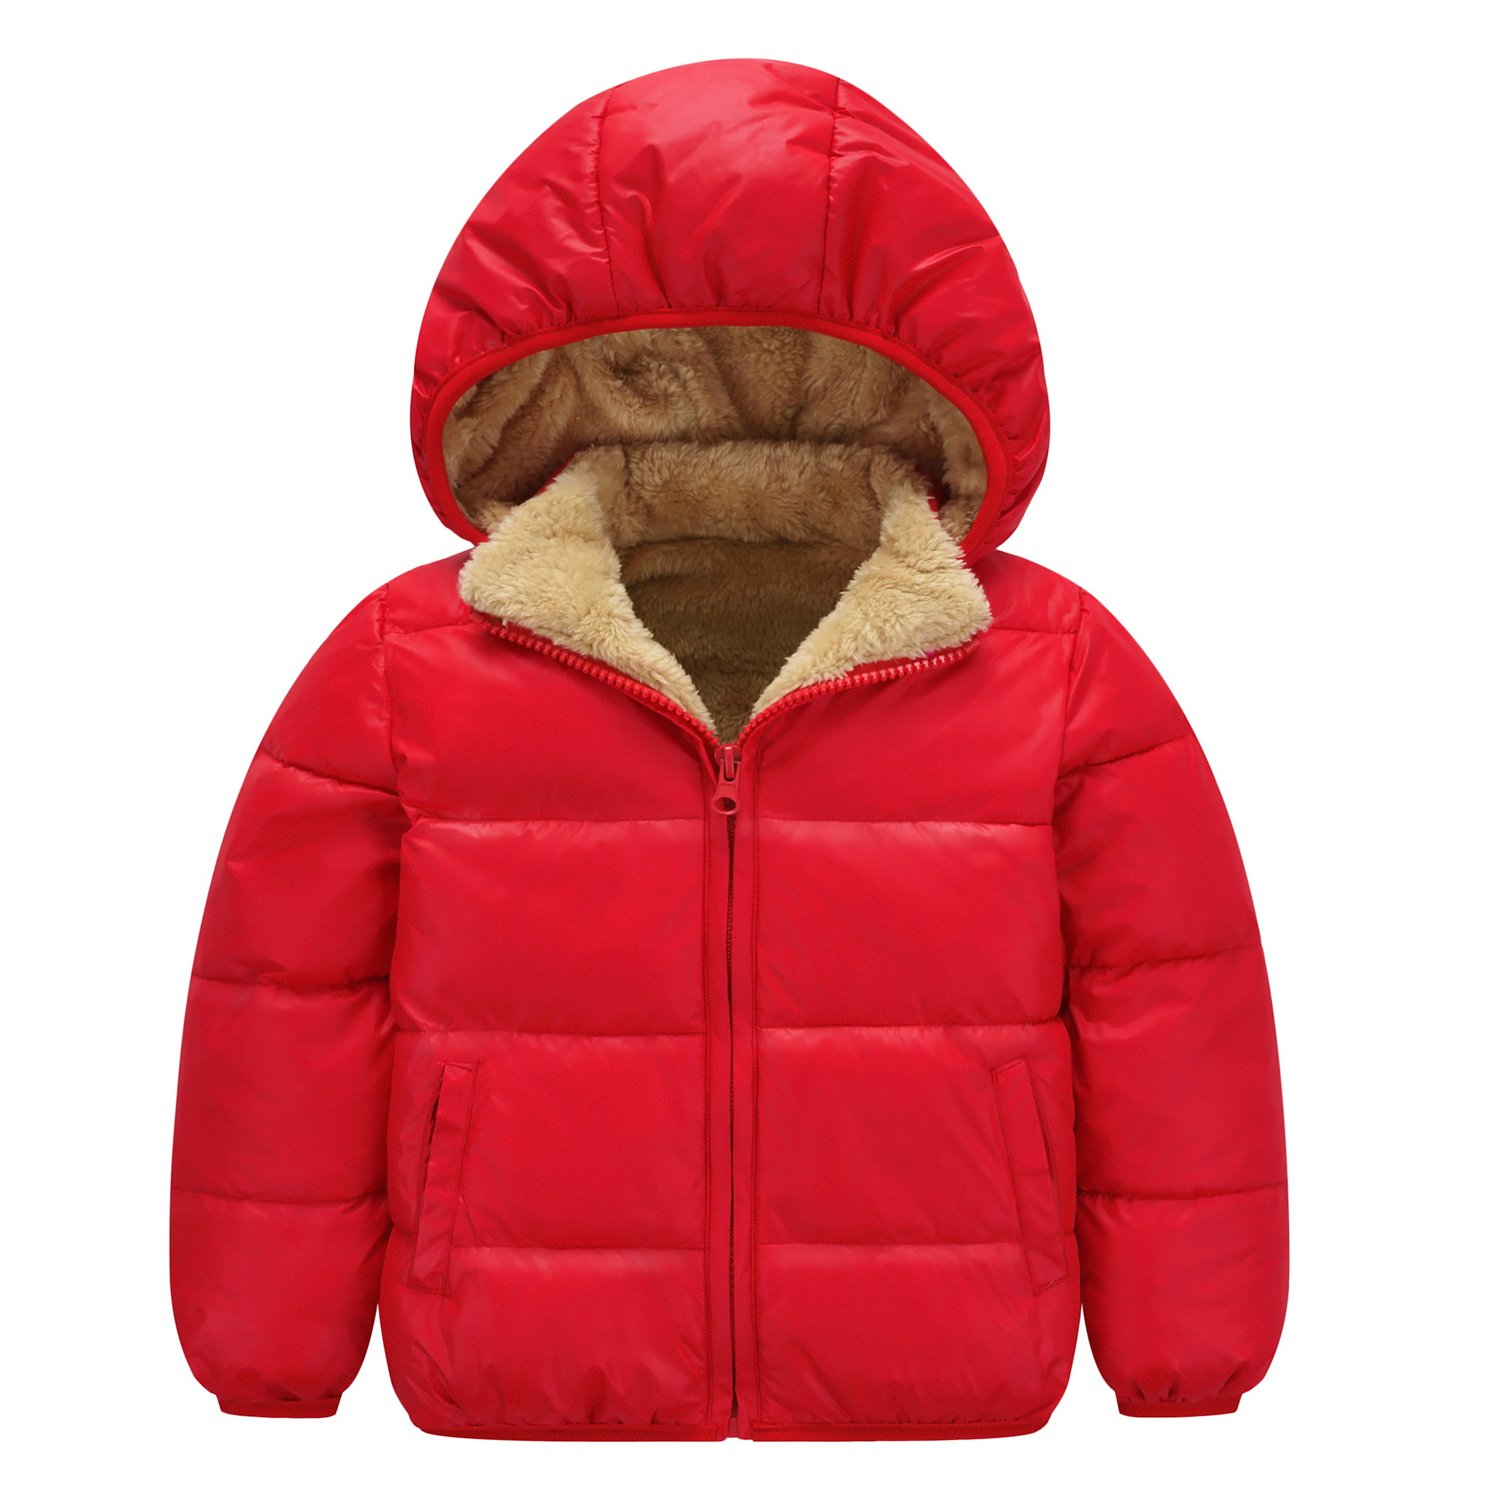 AnKoee Baby Boys Winter Coat Kids Thicken Down Jacket Down Jacket Winter Warm Hooded Coat